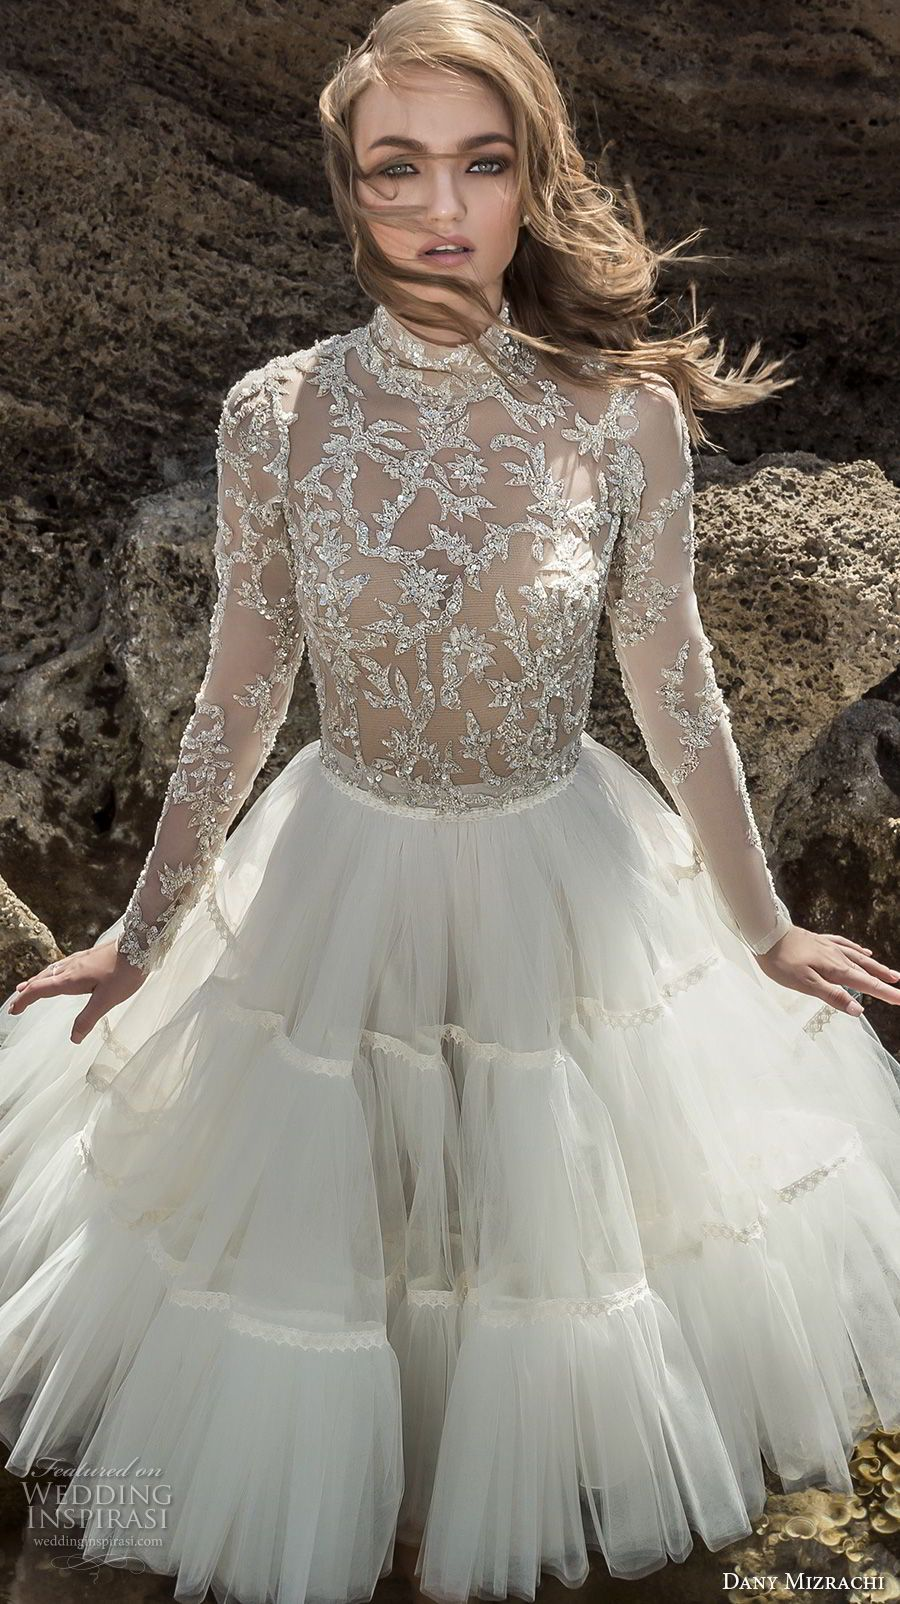 Dany mizrachi wedding dresses short wedding dresses tulle